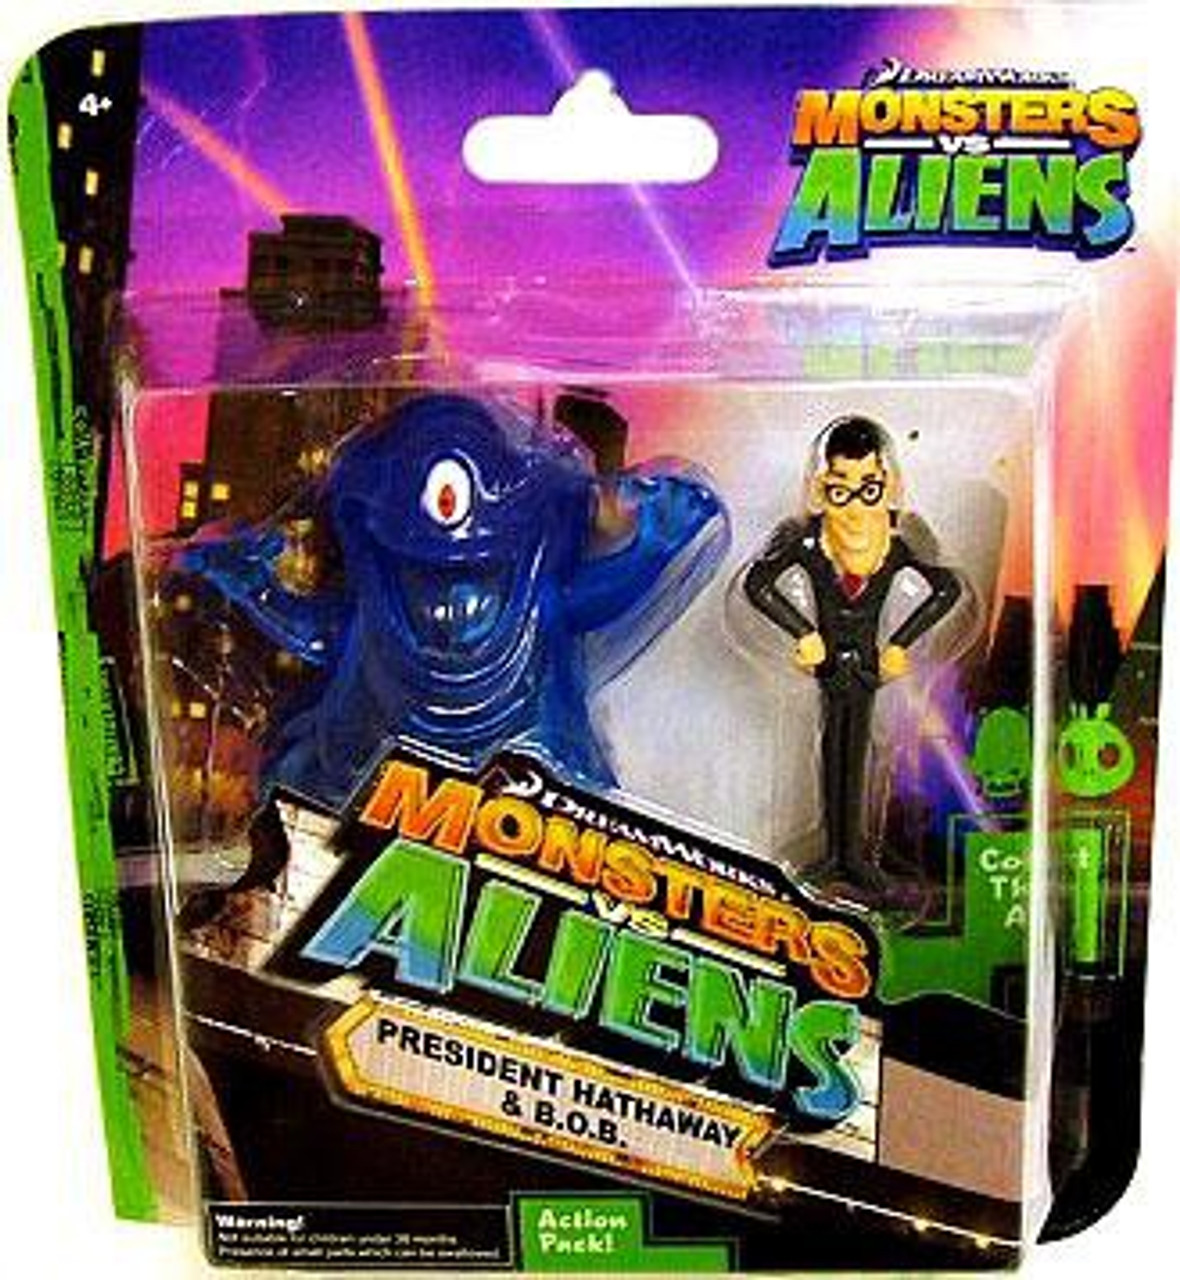 Monsters Vs Aliens President Hathway B O B Mini Figure 2 Pack Dreamworks Animation Toywiz